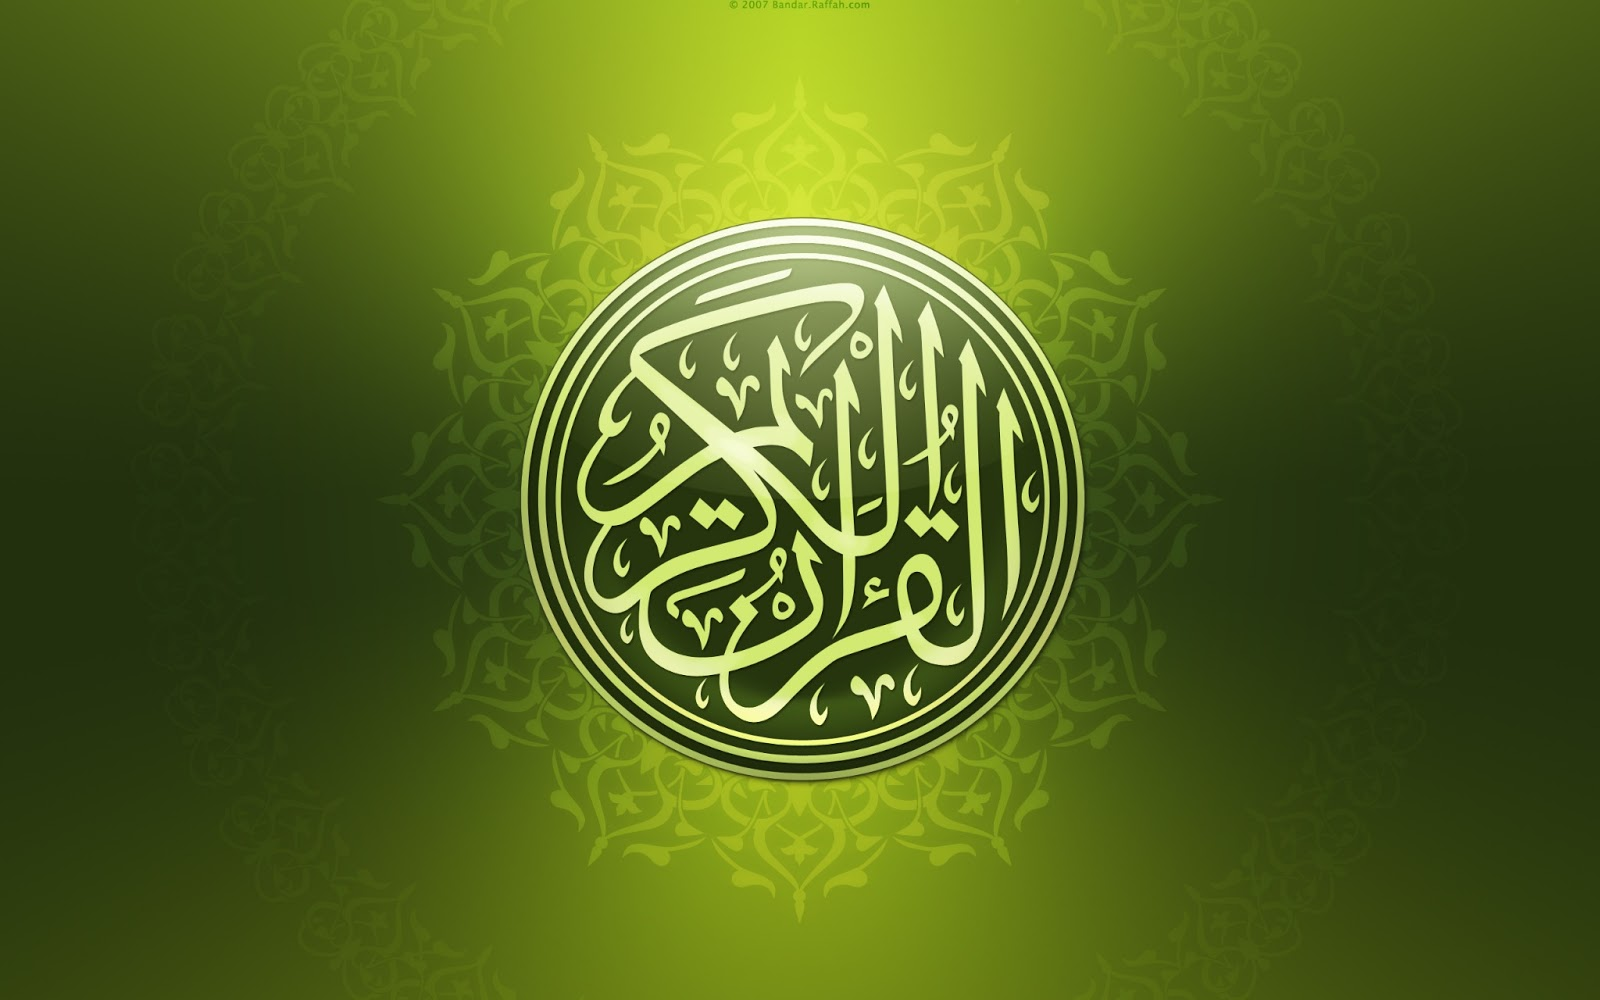 http://3.bp.blogspot.com/-VUAF3DUSywE/UQoEDHZhJCI/AAAAAAAAQKw/DTyKwCQFkZY/s1600/islamic_free_download_desktop_backgrounds_high_resolution_hd_hq_face_wallpapers_images_pics_11-2560x1600.jpg